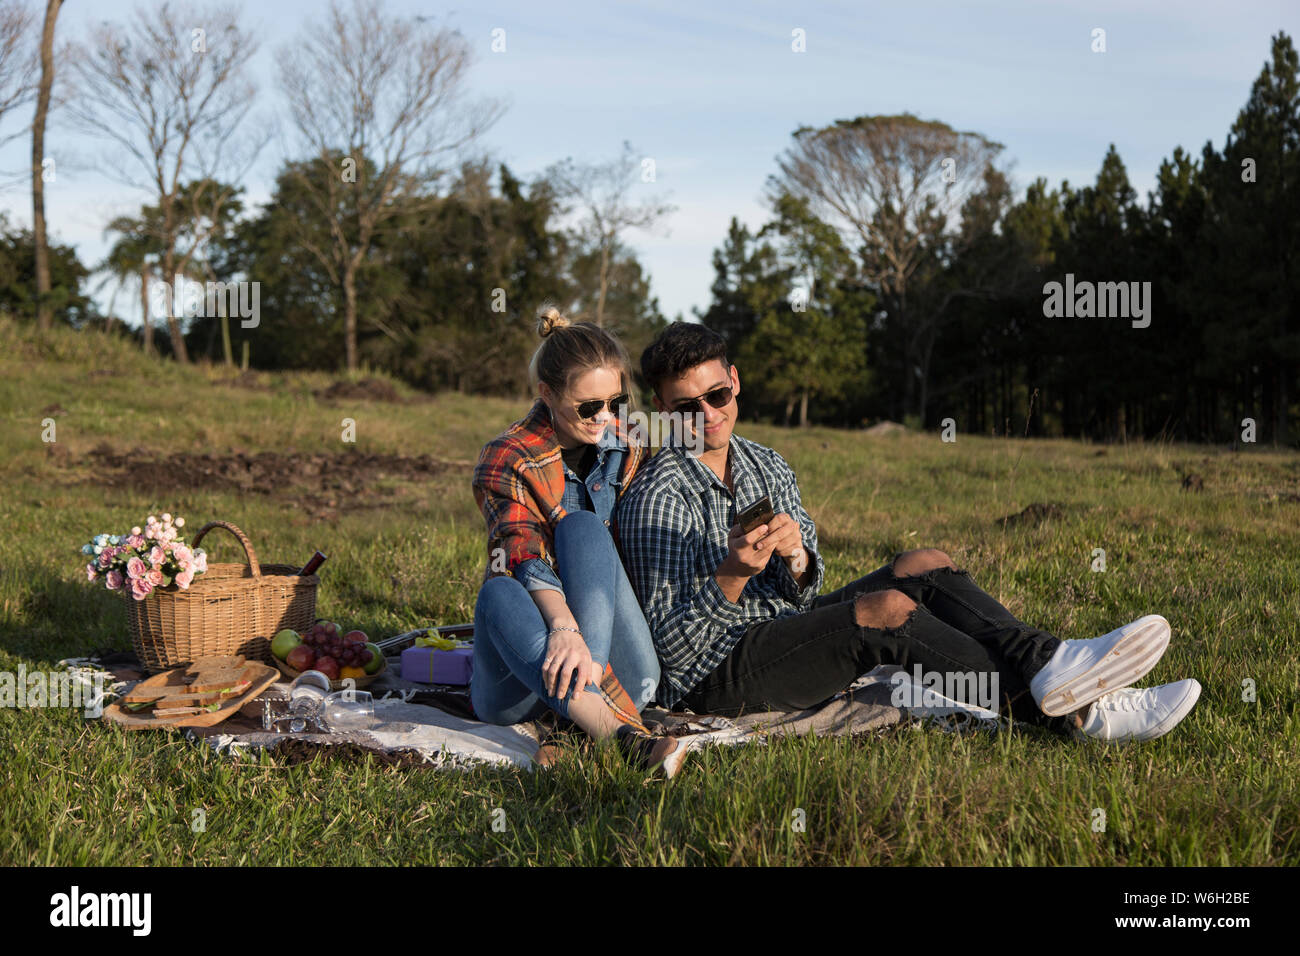 man and woman sitting with glasses taking selfies under the sun Stock Photo